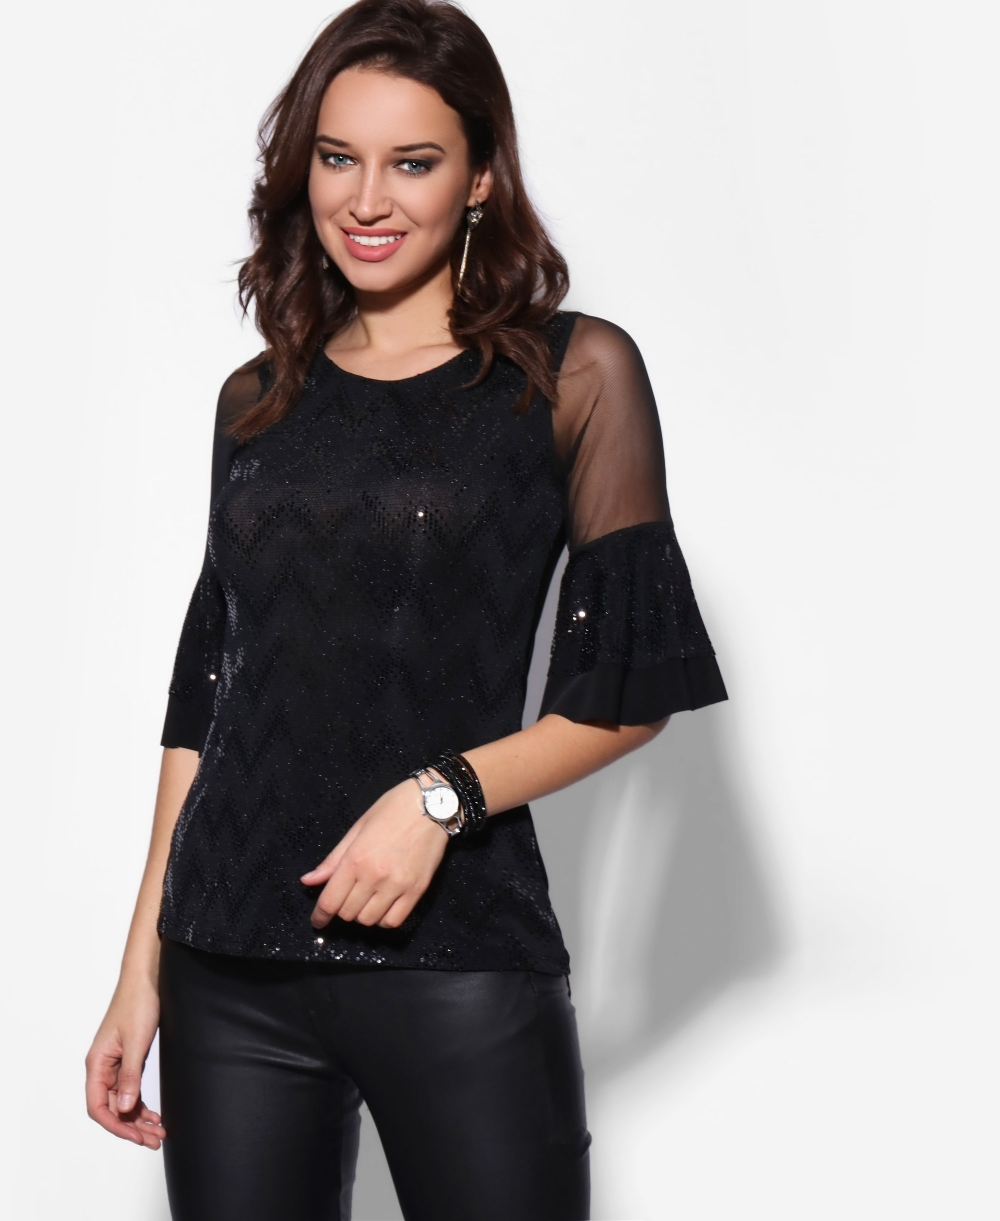 New Look Women/'s Cut Out Shoulder Long Sleeve Top UK10 459